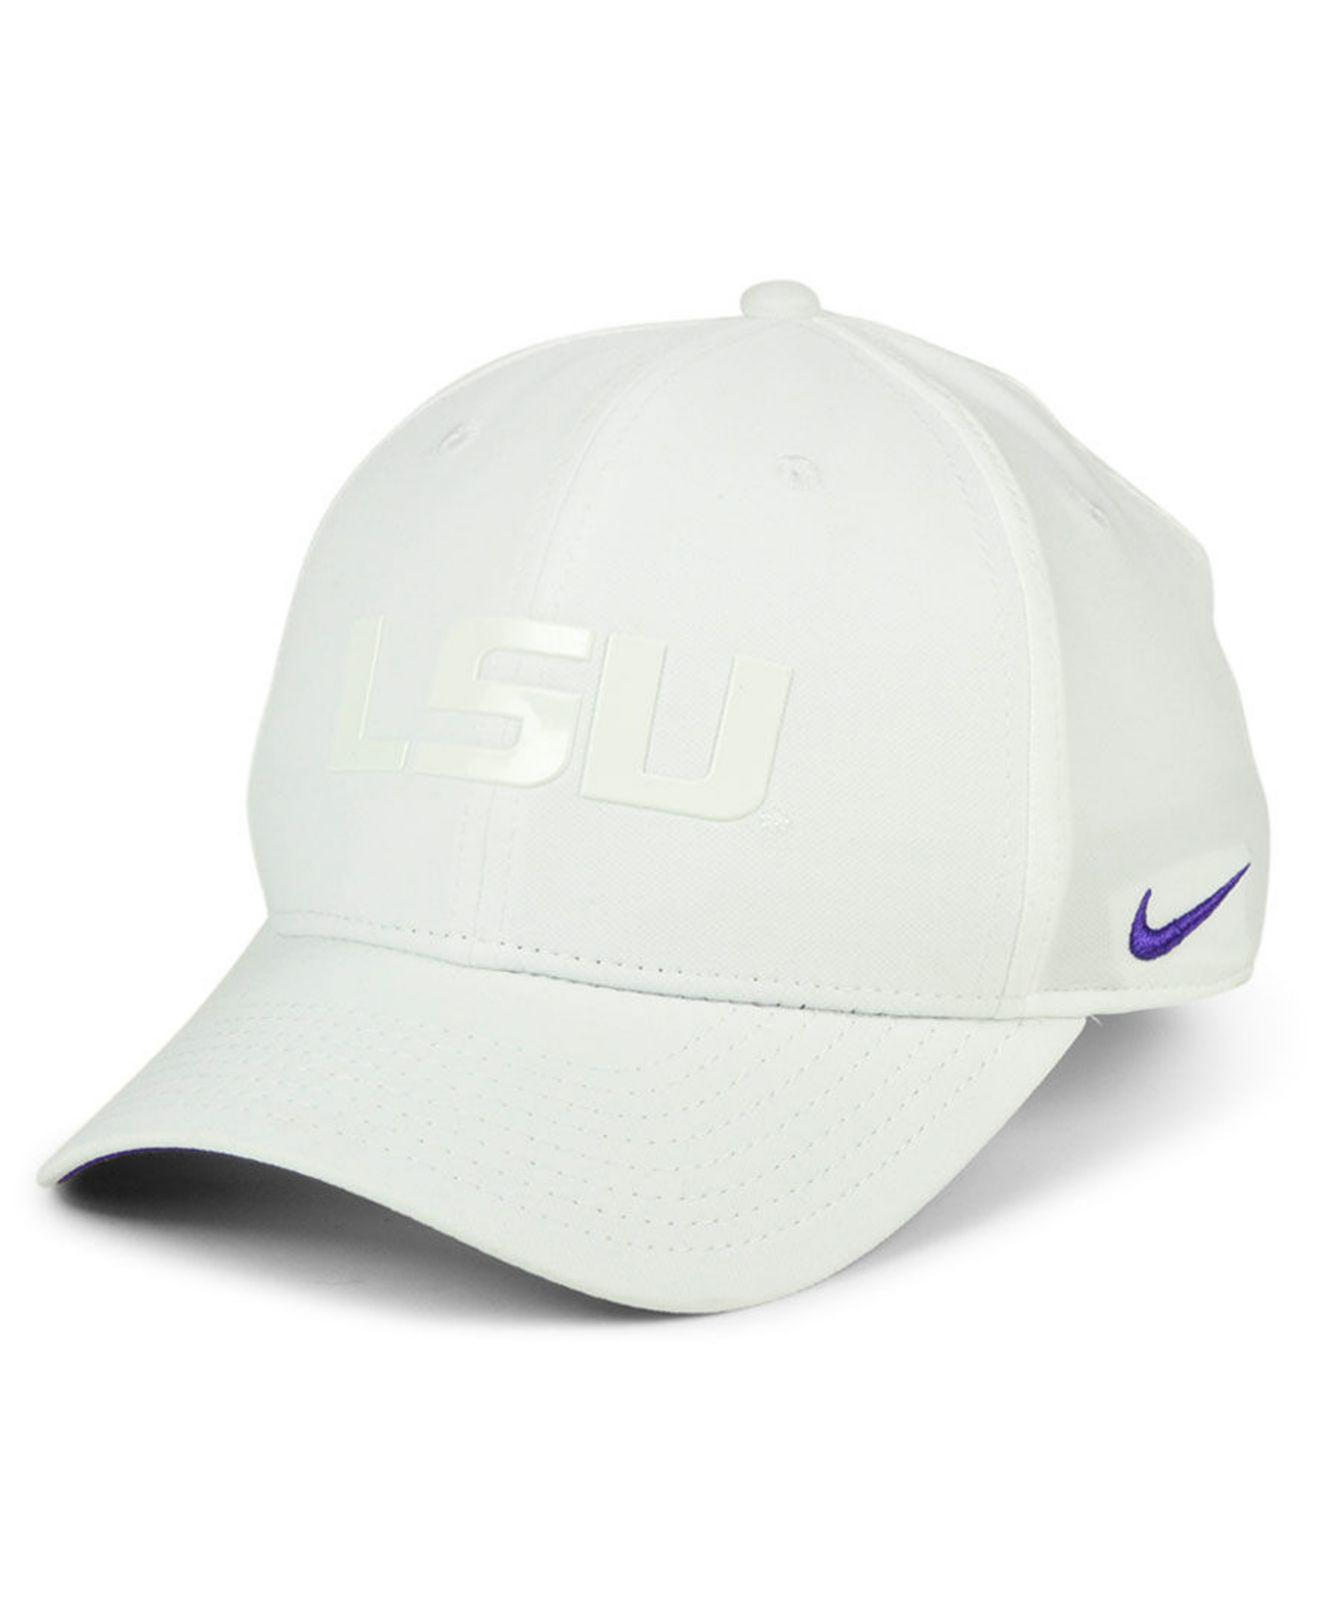 size 40 2e65b 76933 Lyst - Nike Lsu Tigers Col Cap in White for Men